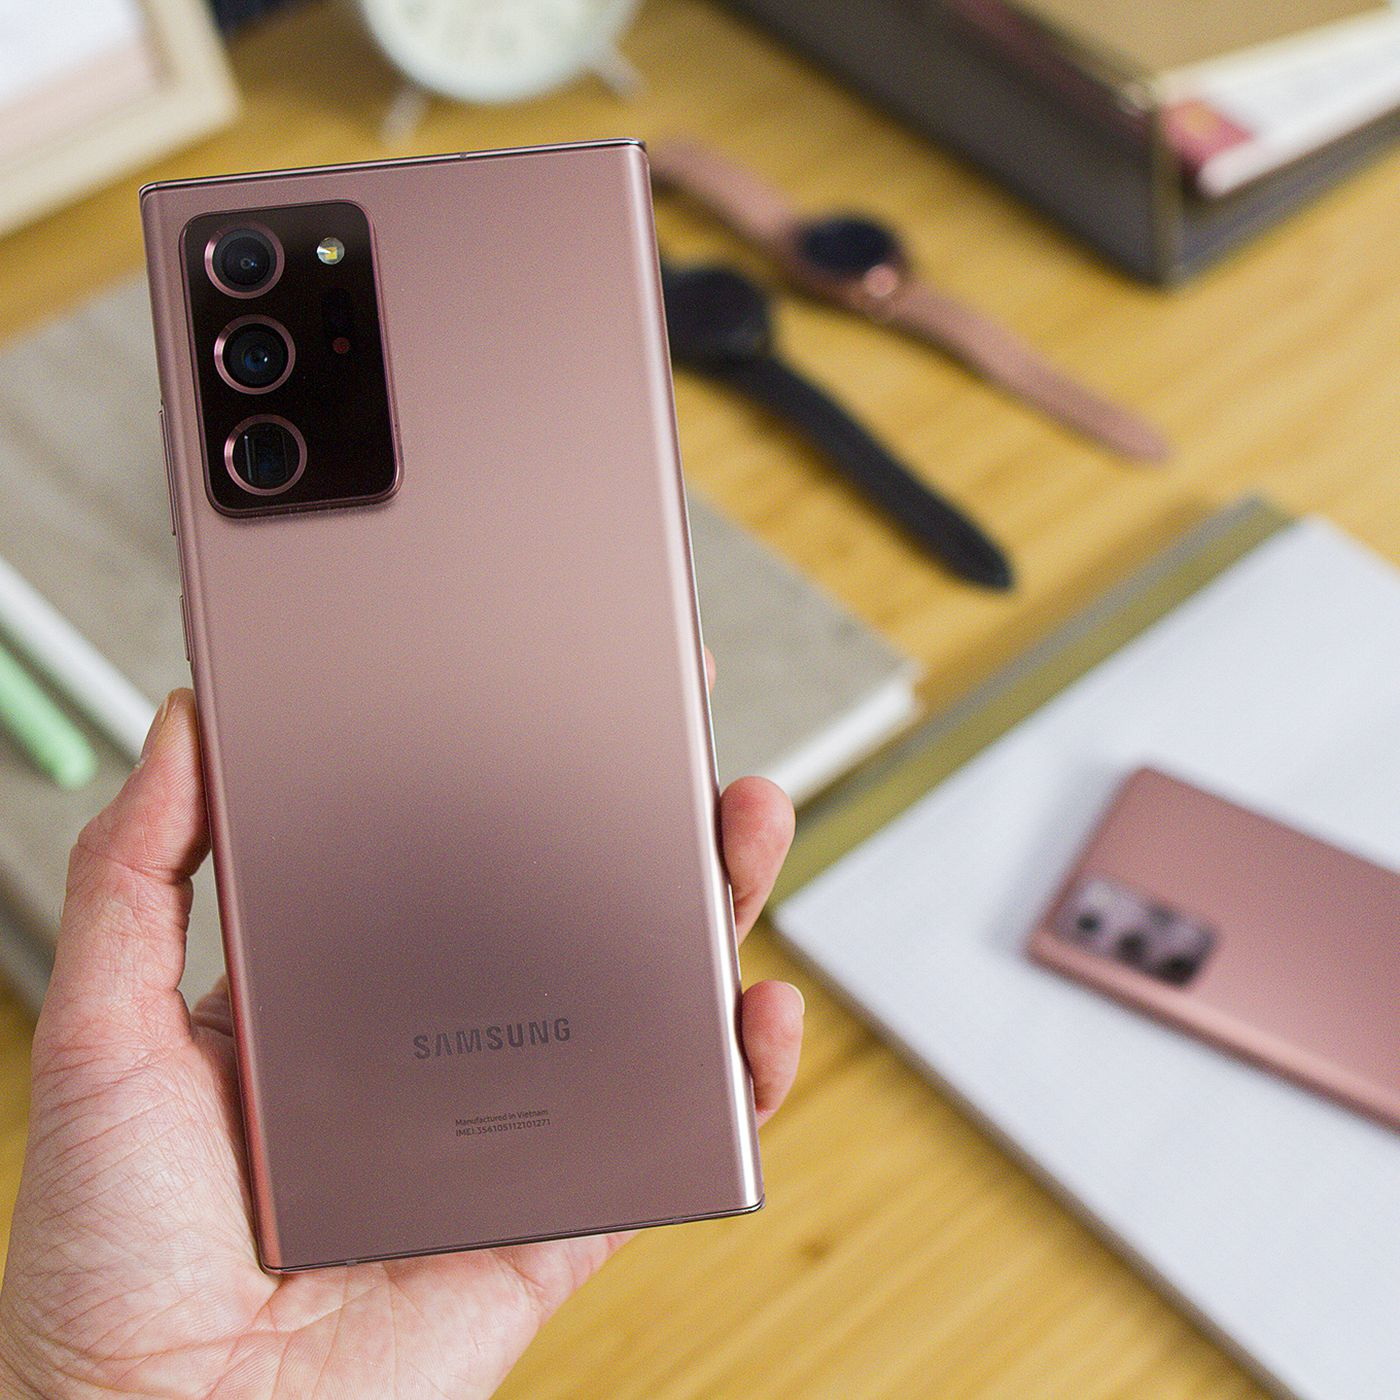 Samsung Phones For Verizon On Backorder For Christmas 2020 Samsung Galaxy Note 20: price, carriers and where to buy   The Verge